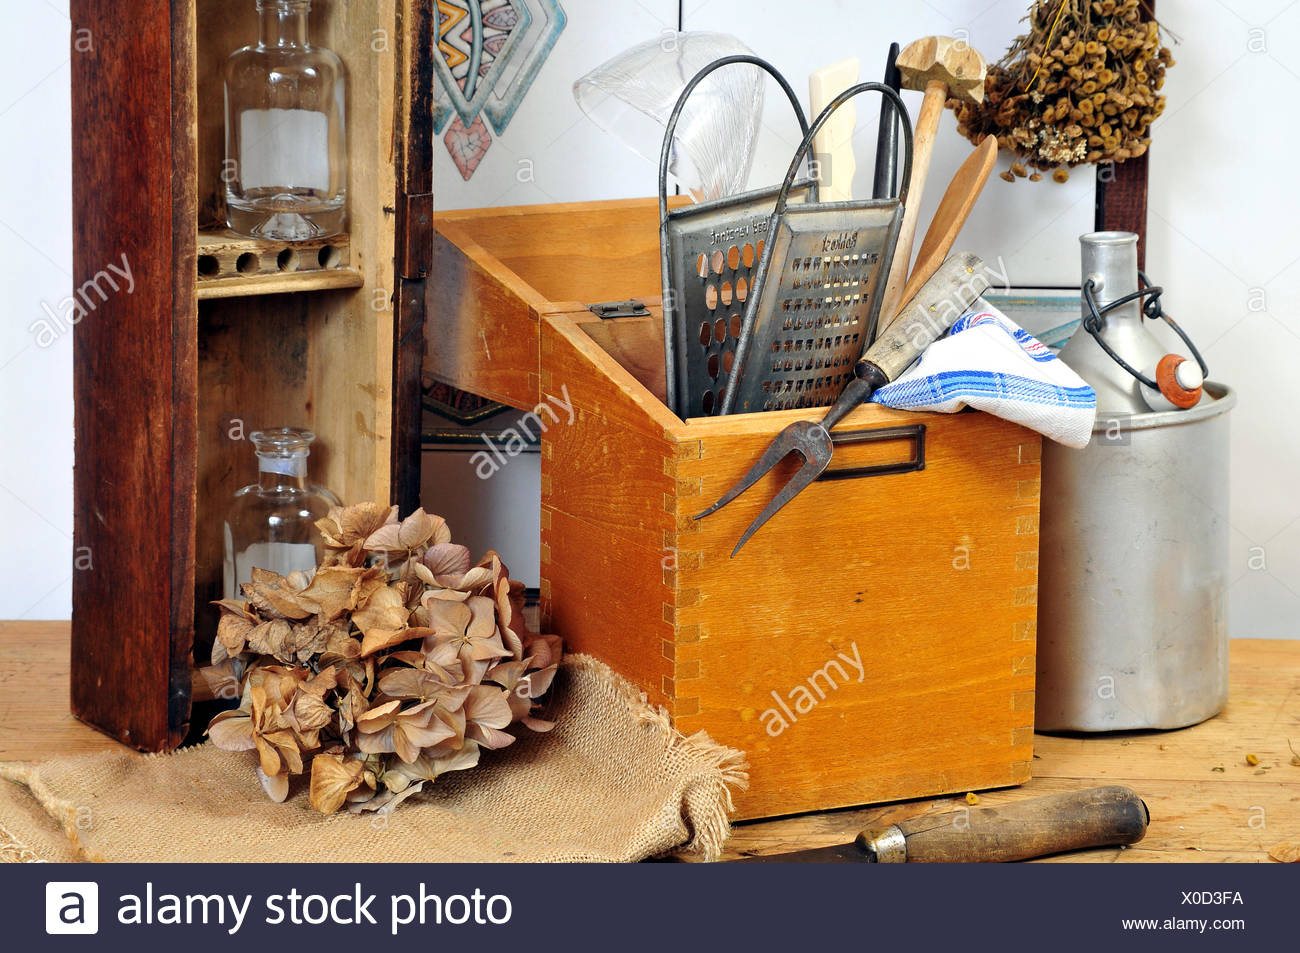 Old rustic wood country kitchen - Stock Image